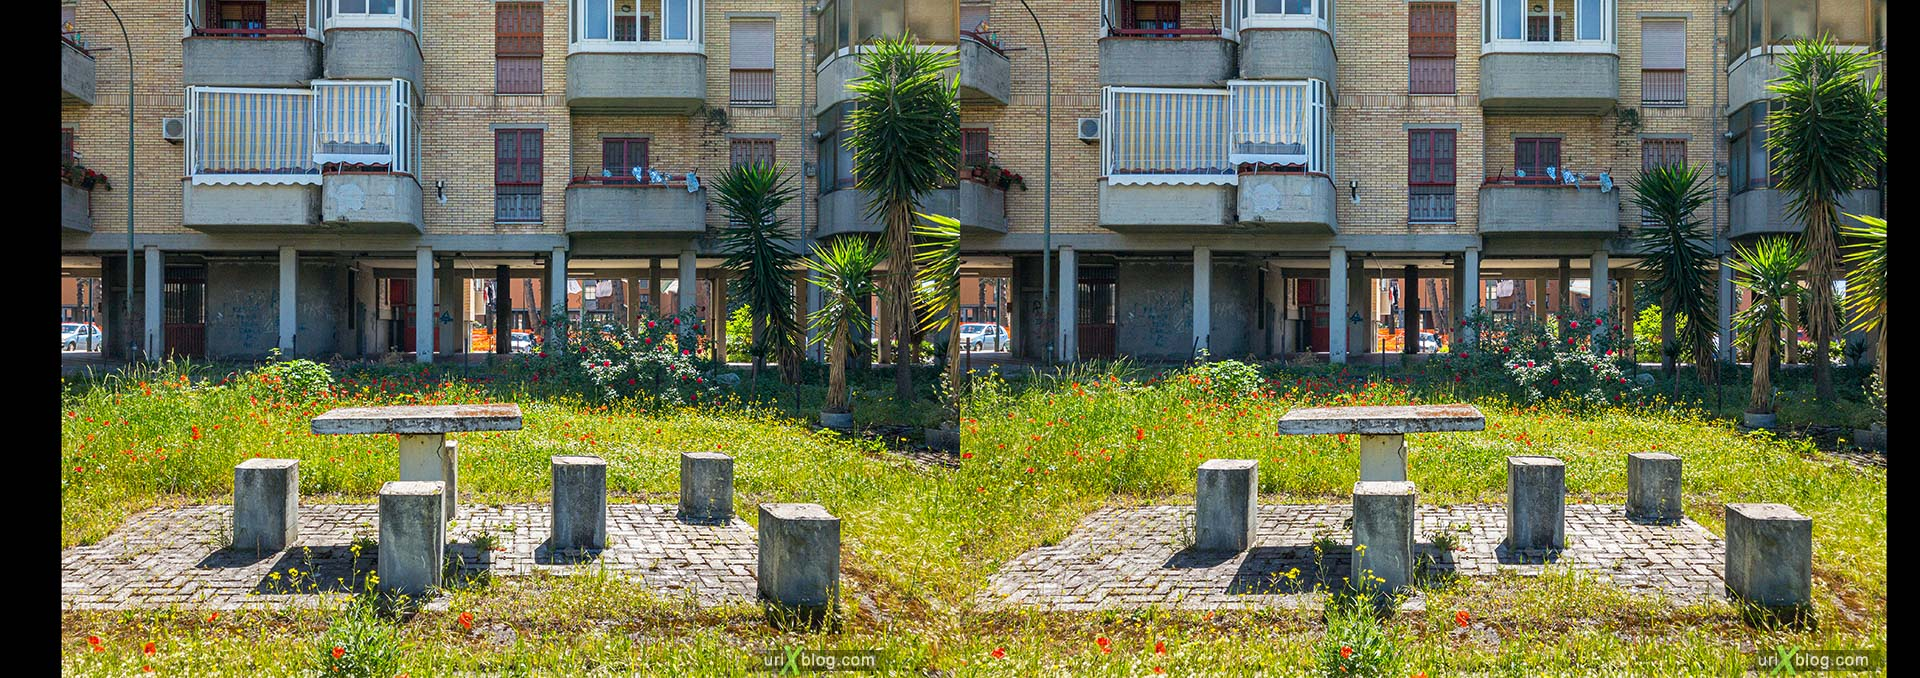 Villa Regina, Italy, 3D, stereo pair, cross-eyed, crossview, cross view stereo pair, stereoscopic